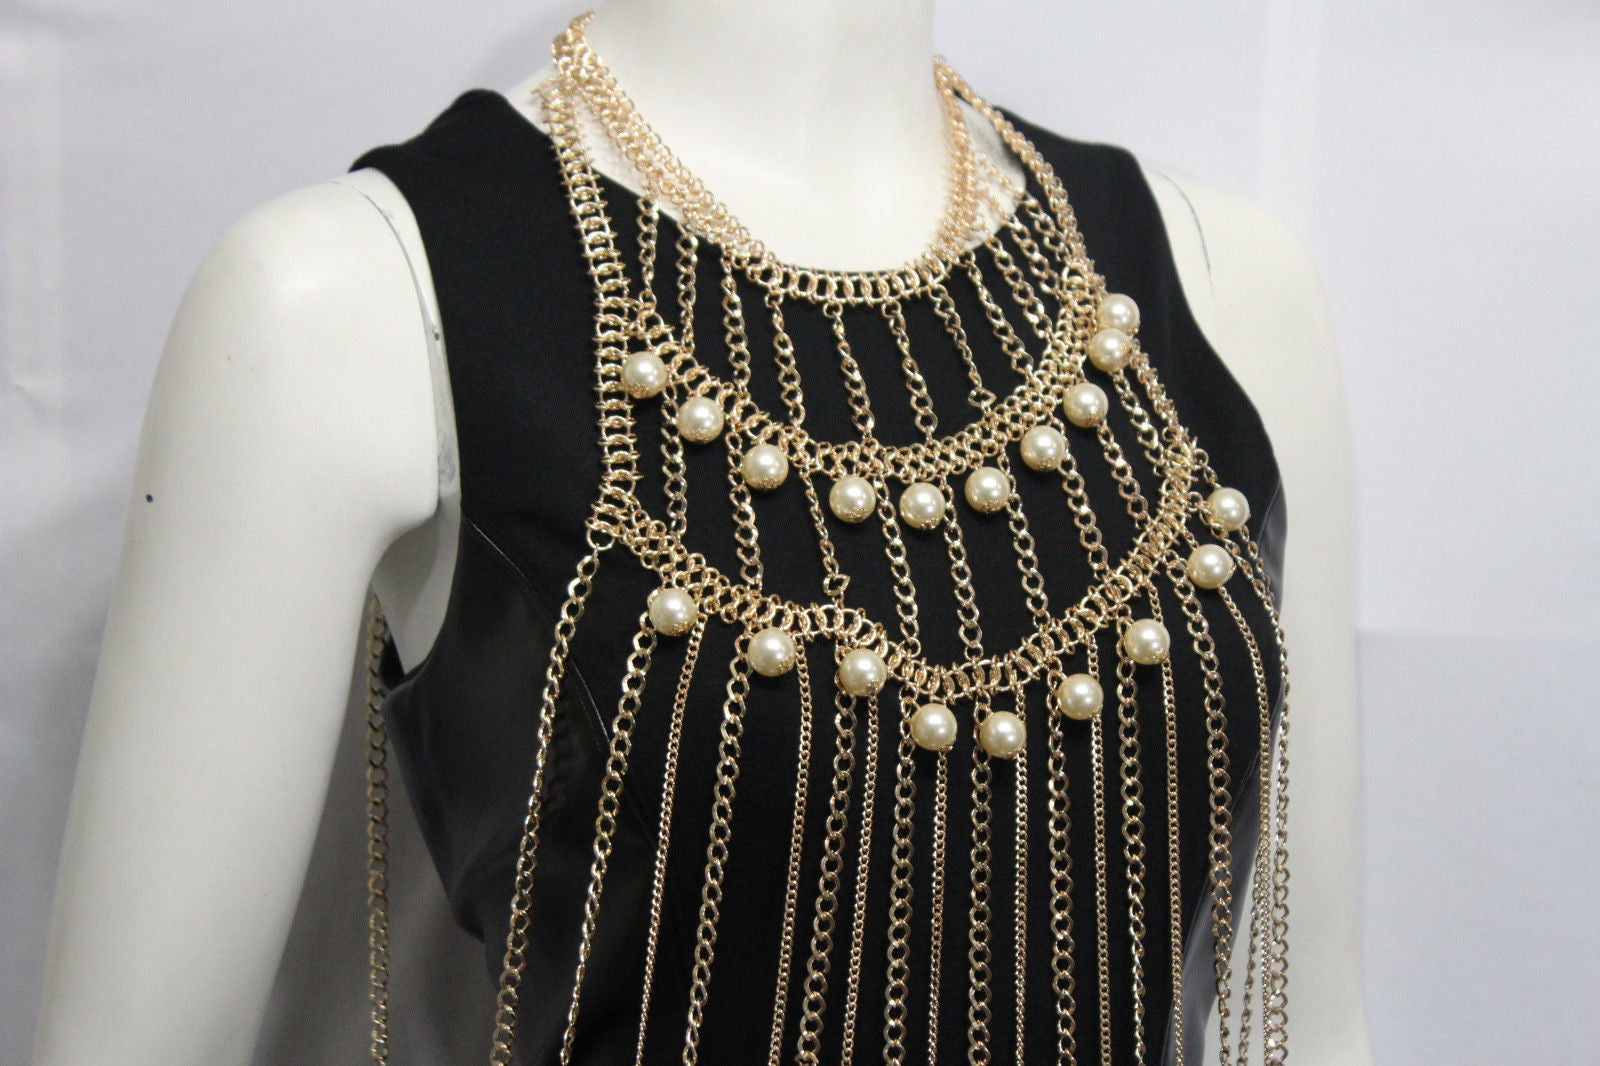 gold necklaces like necklace harness l body chain look follow chains ftxzei jewels